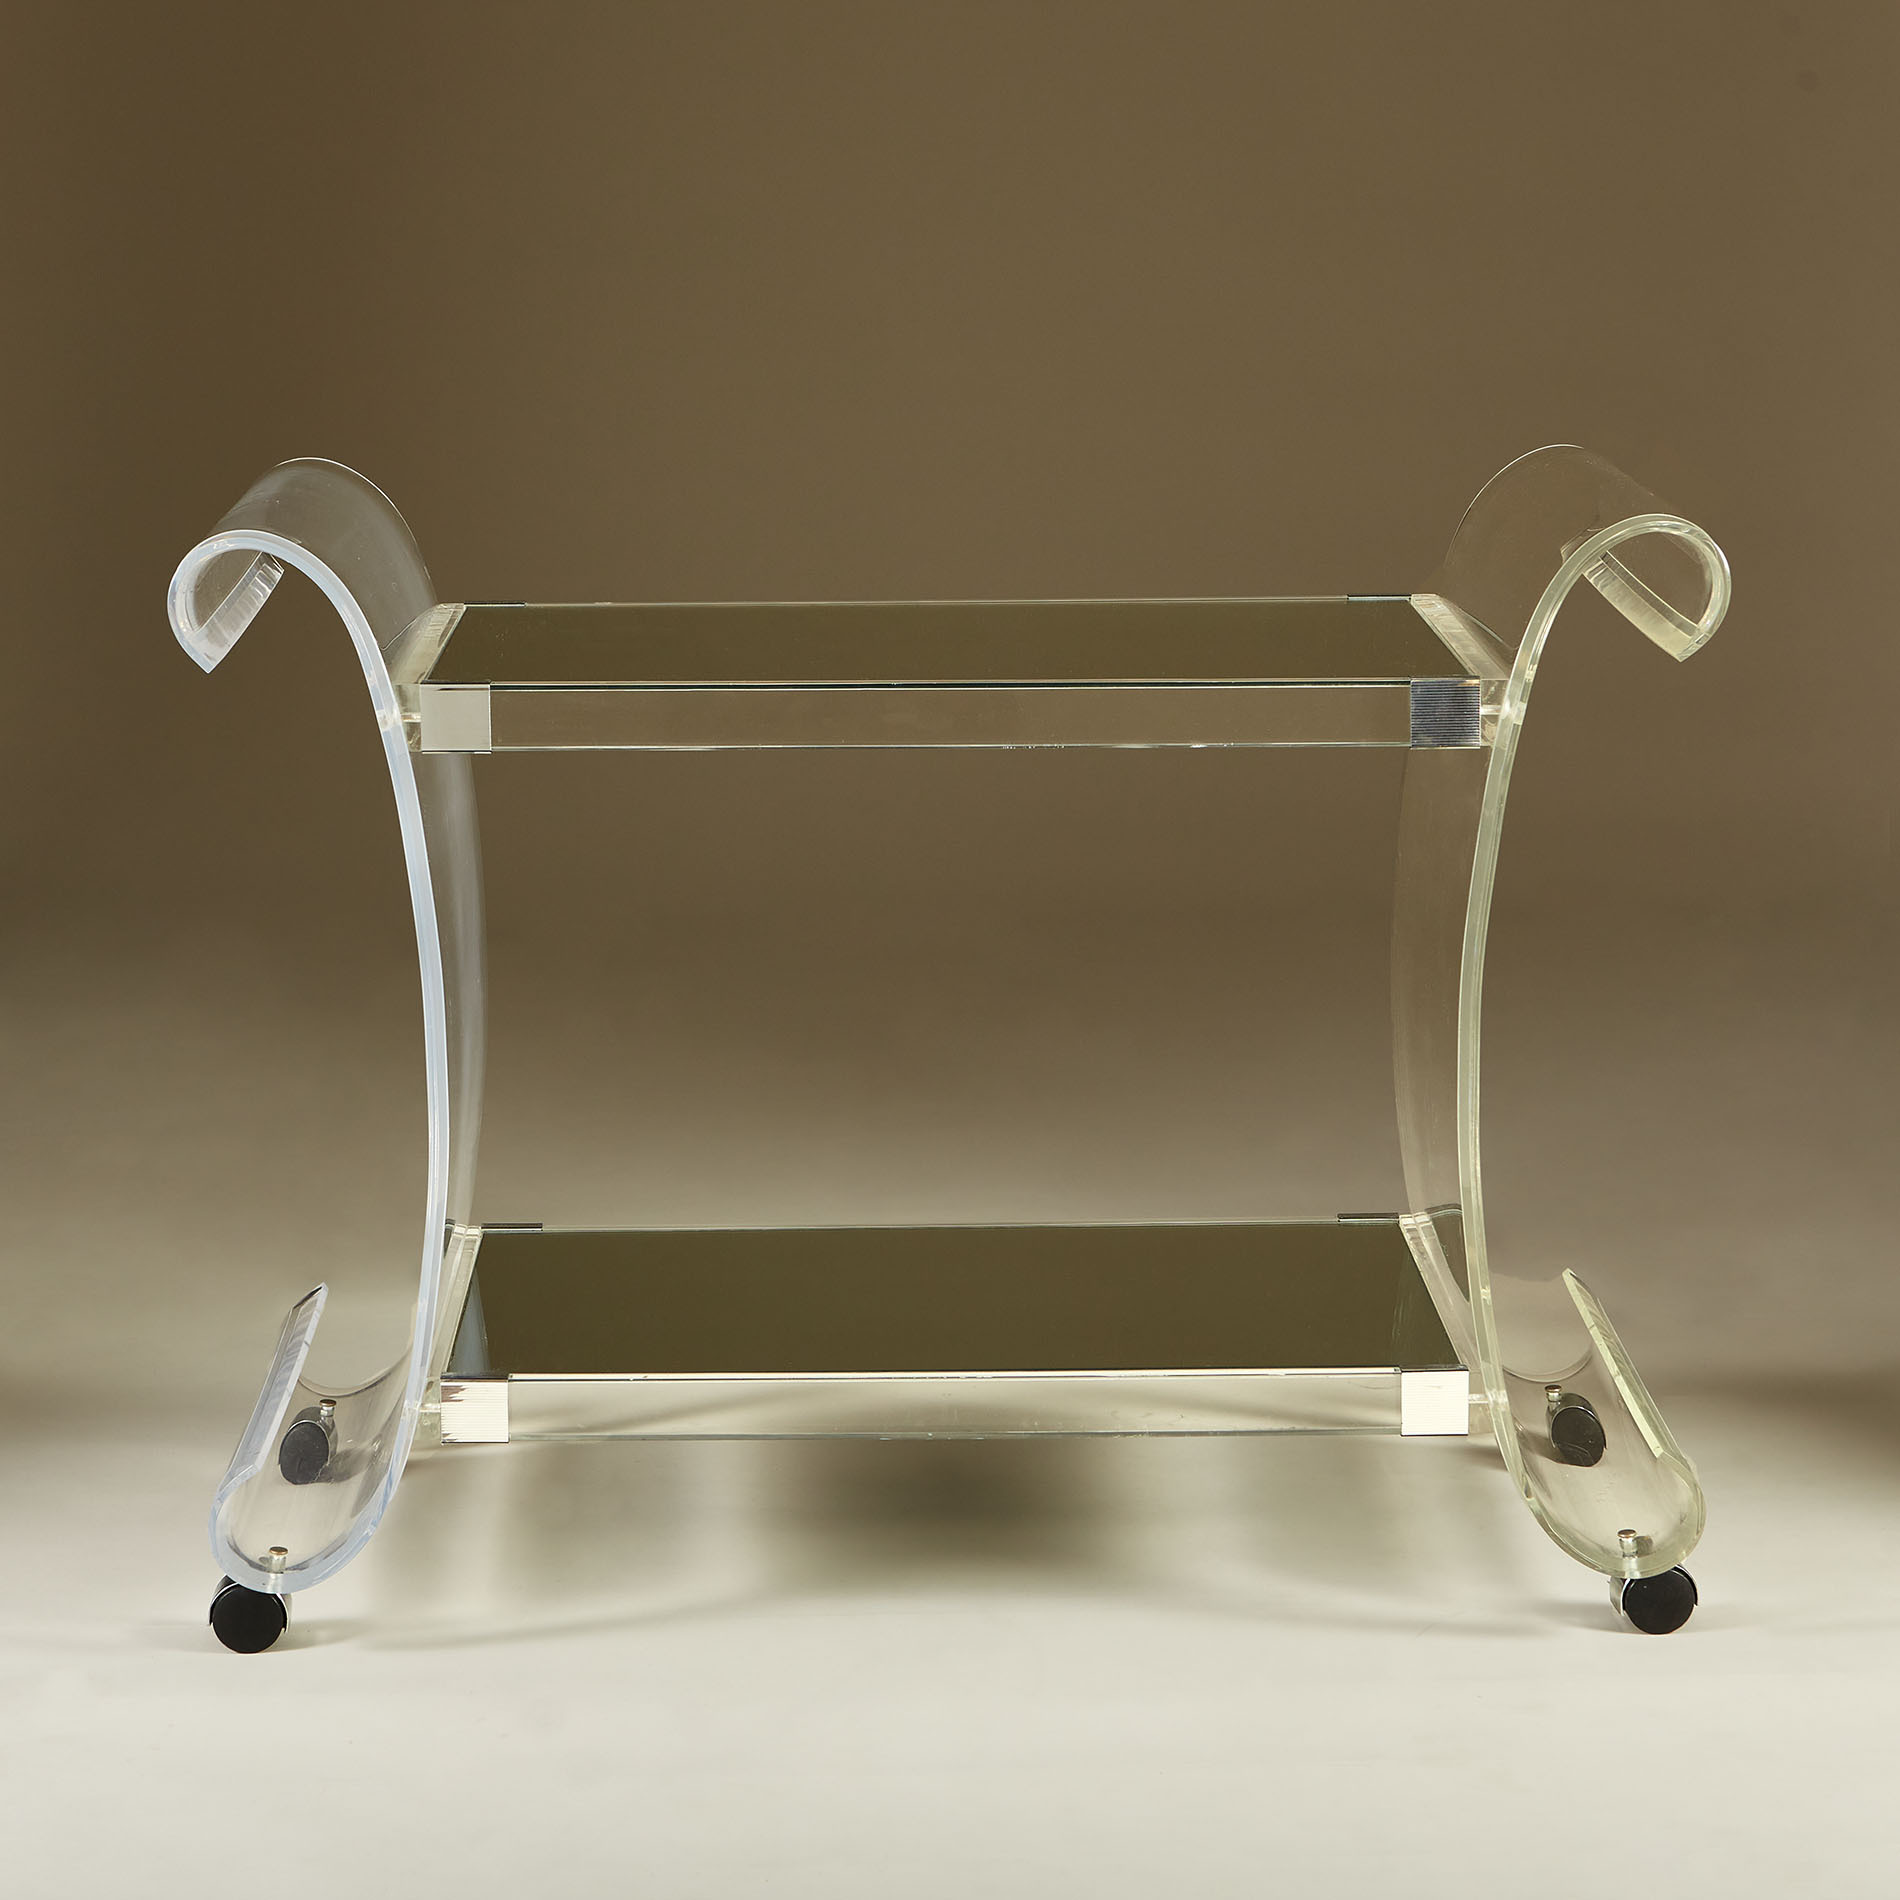 Us Lucite Drinks Trolley 20210225 Valerie Wade 3 151 V1